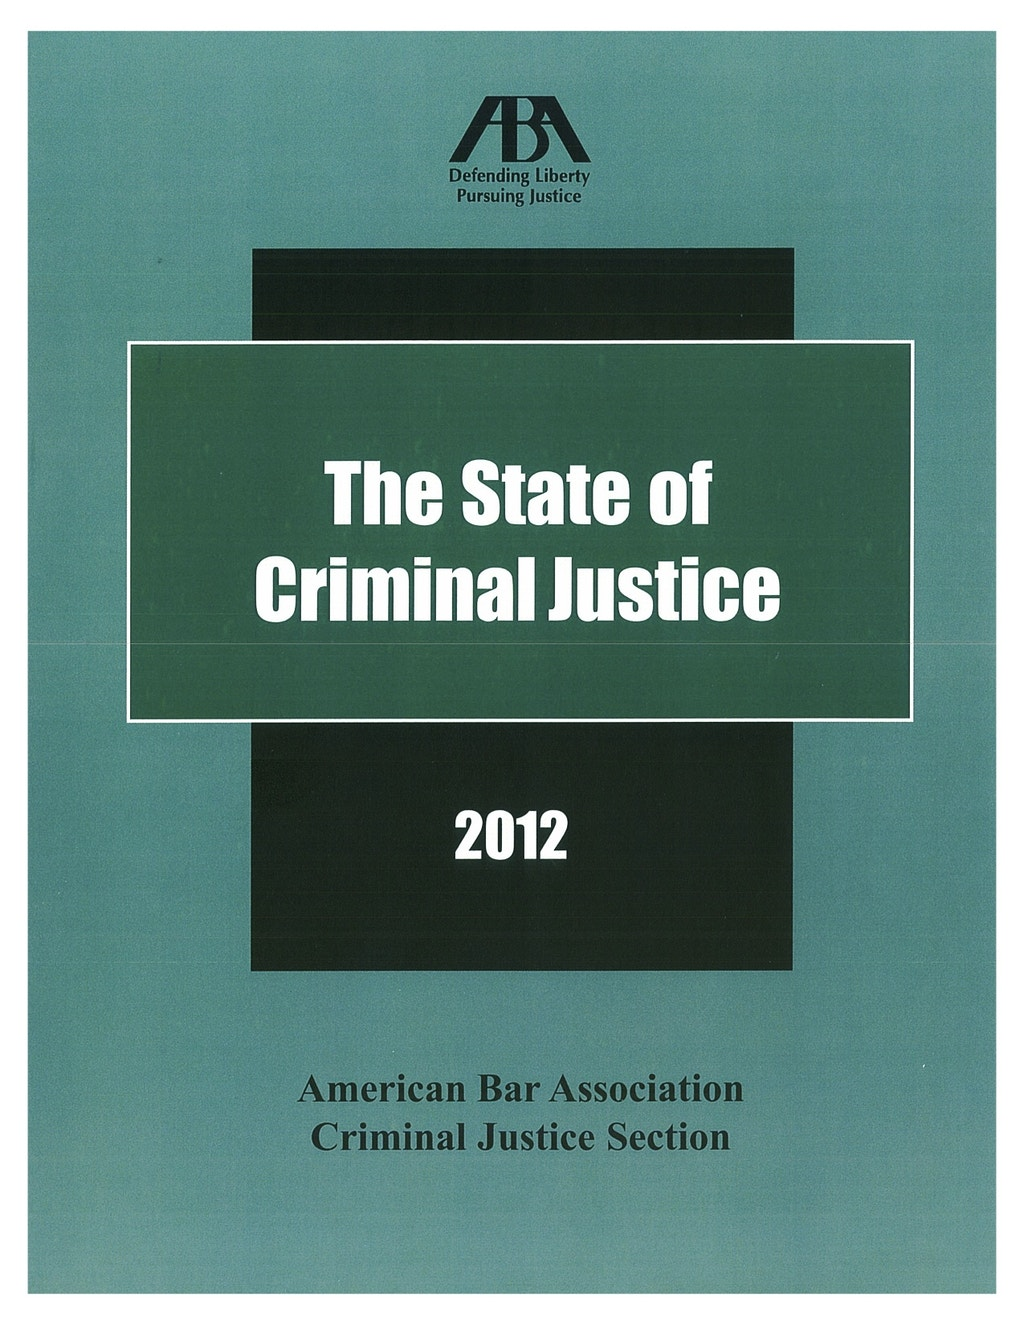 NEW RESOURCE: The State of Criminal Justice 2012